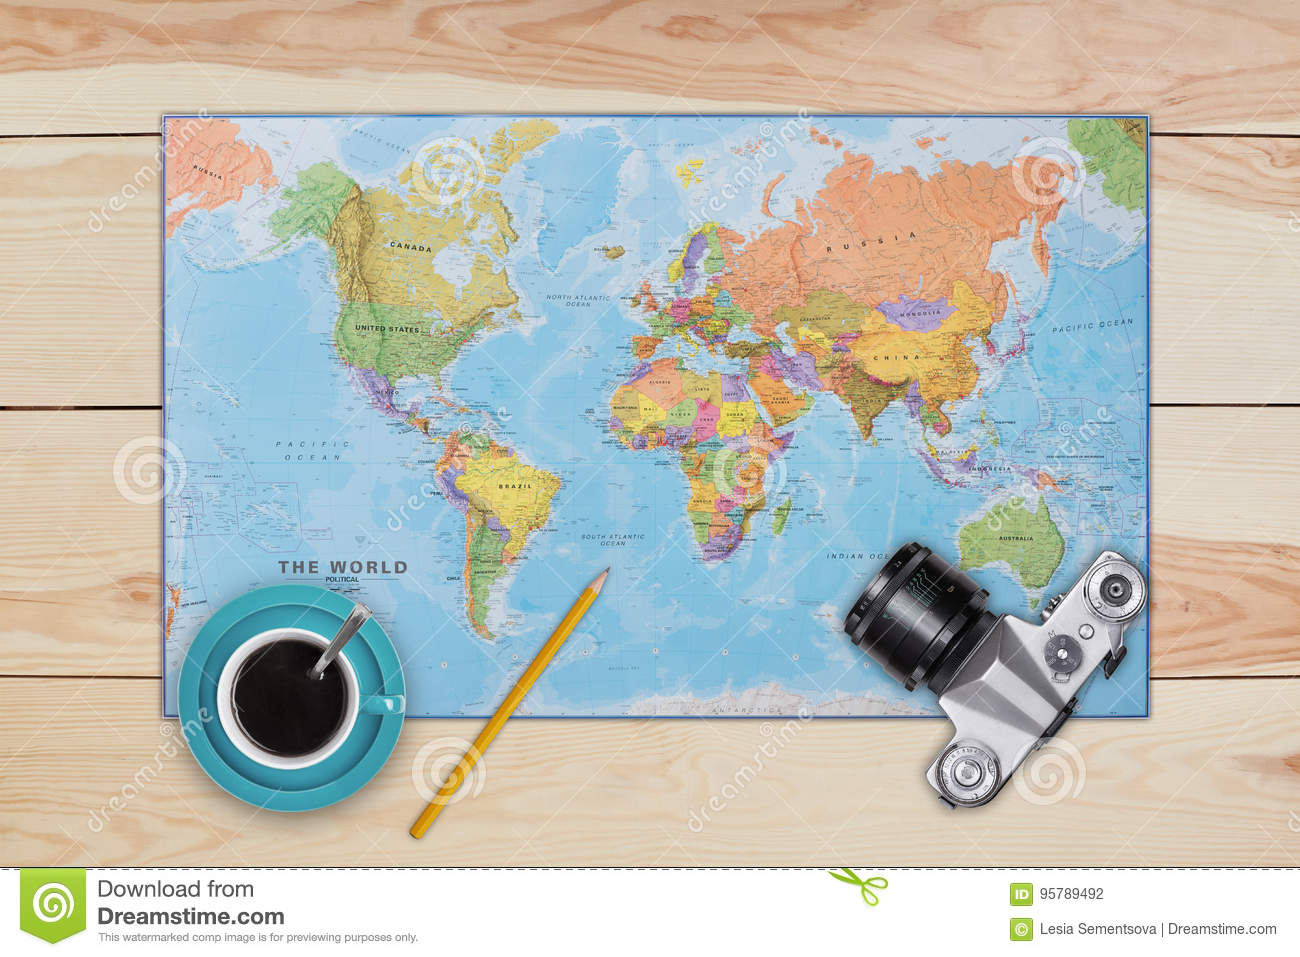 Map old camera cup of coffee and pencil laying on wooden desk map old camera cup of coffee and pencil laying on wooden desk necessary equipment of traveler or tourist top view of traveler baggage and retro camera gumiabroncs Image collections